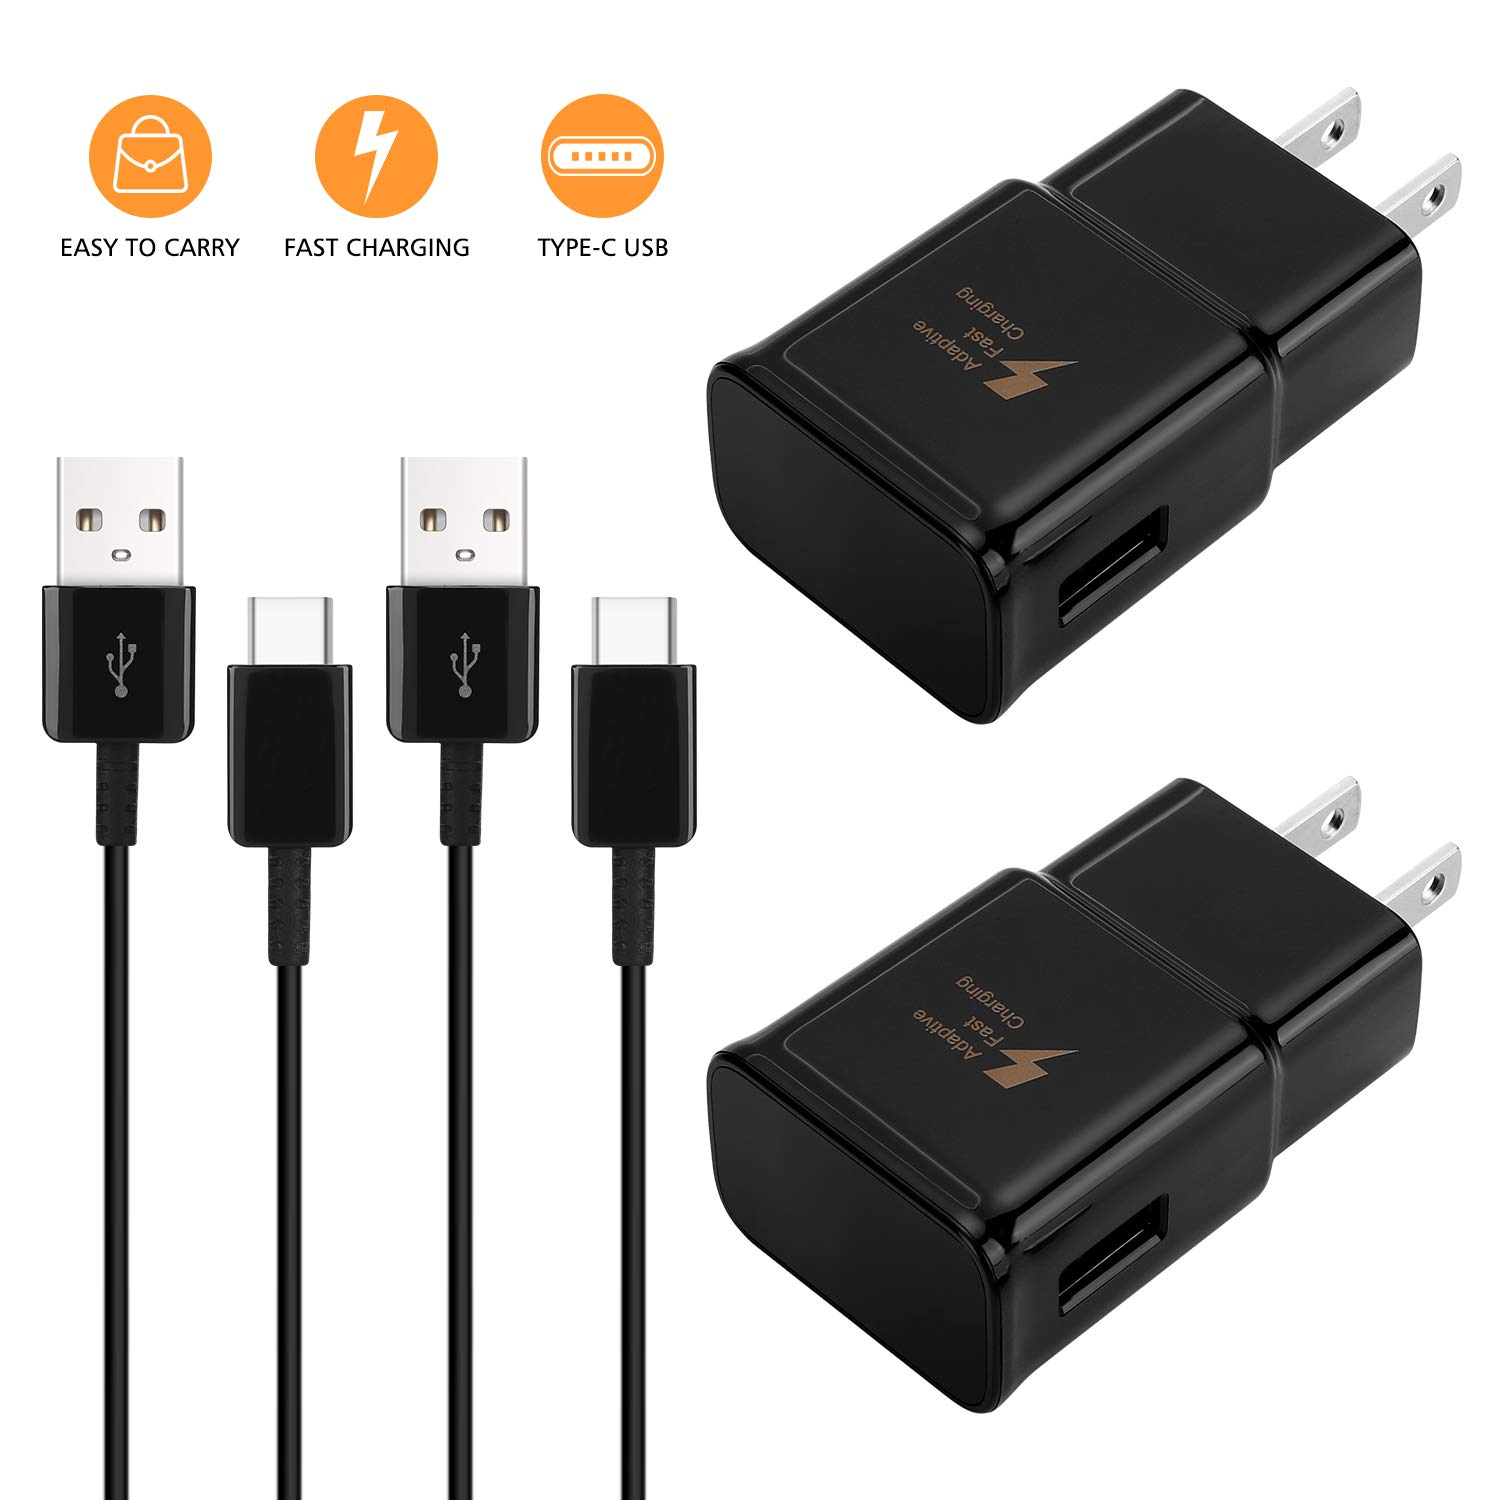 Adaptive Fast Wall Charger Adapter Compatible Samsung Galaxy S10 S9 S8 /Edge/Plus/Active,Note 9,Note 8,c9pro,LG G5 G6 G7 V20 V30 ThinQ Plus EP-TA with USB Type C to A Cable Cord